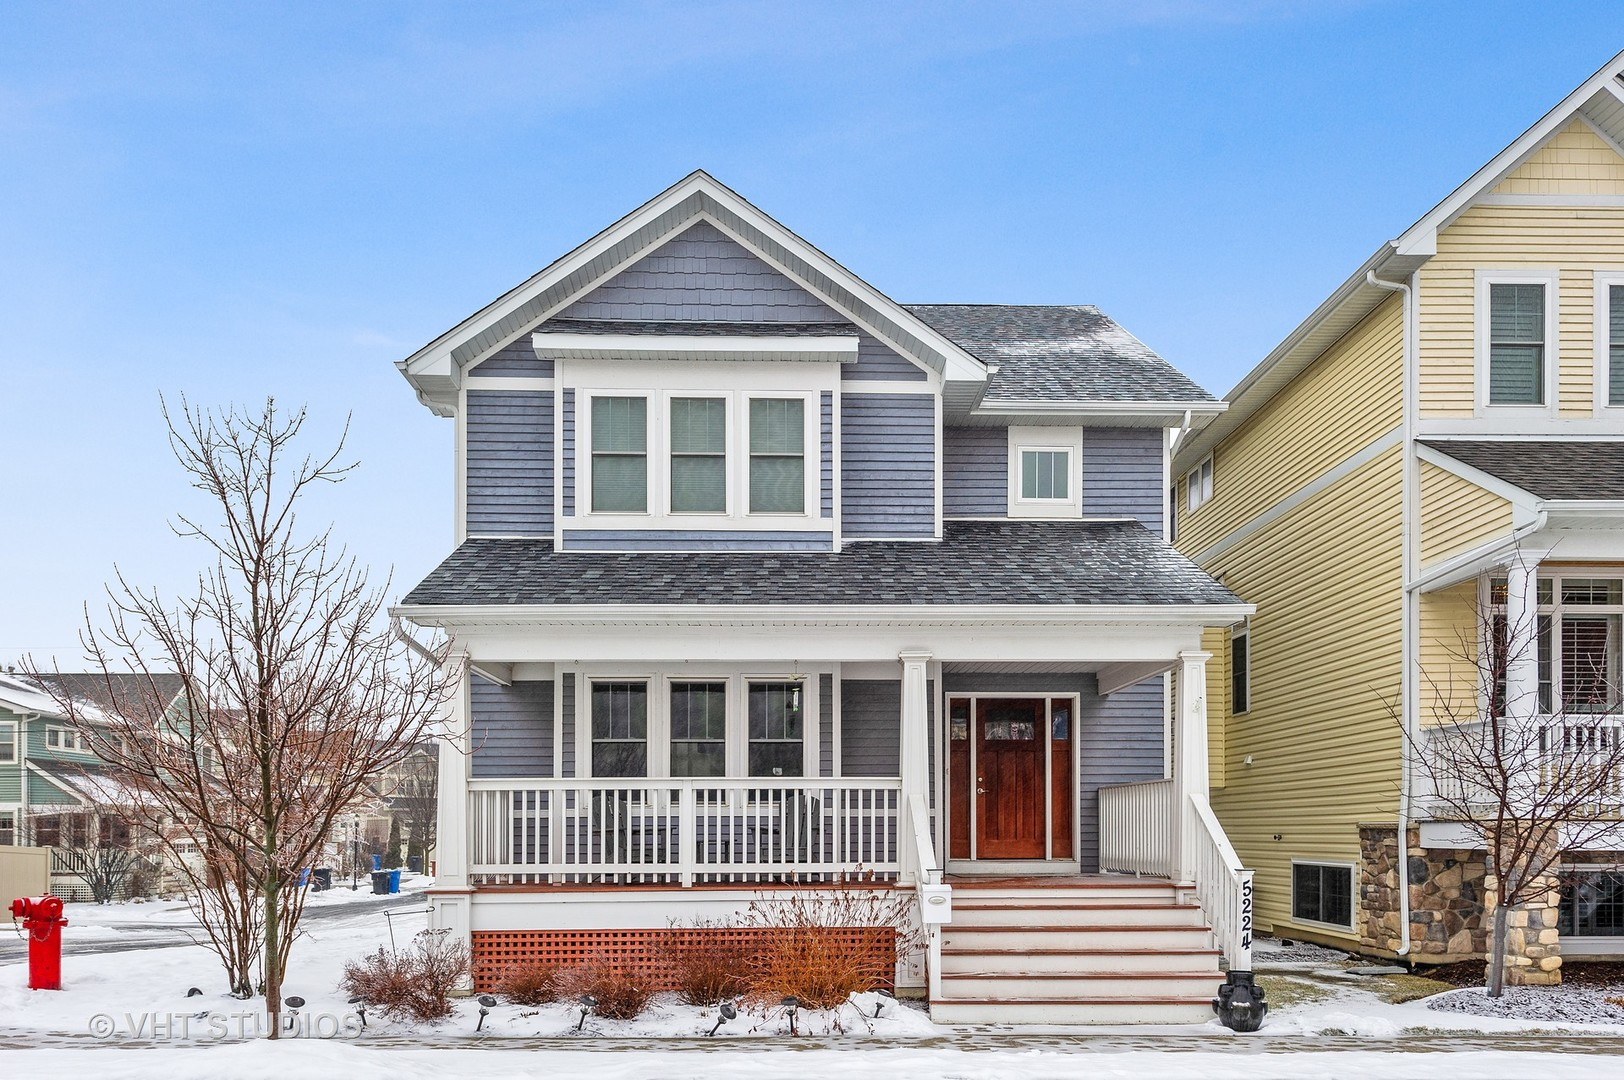 5224 WEST SEMINOLE STREET, CHICAGO, IL 60646